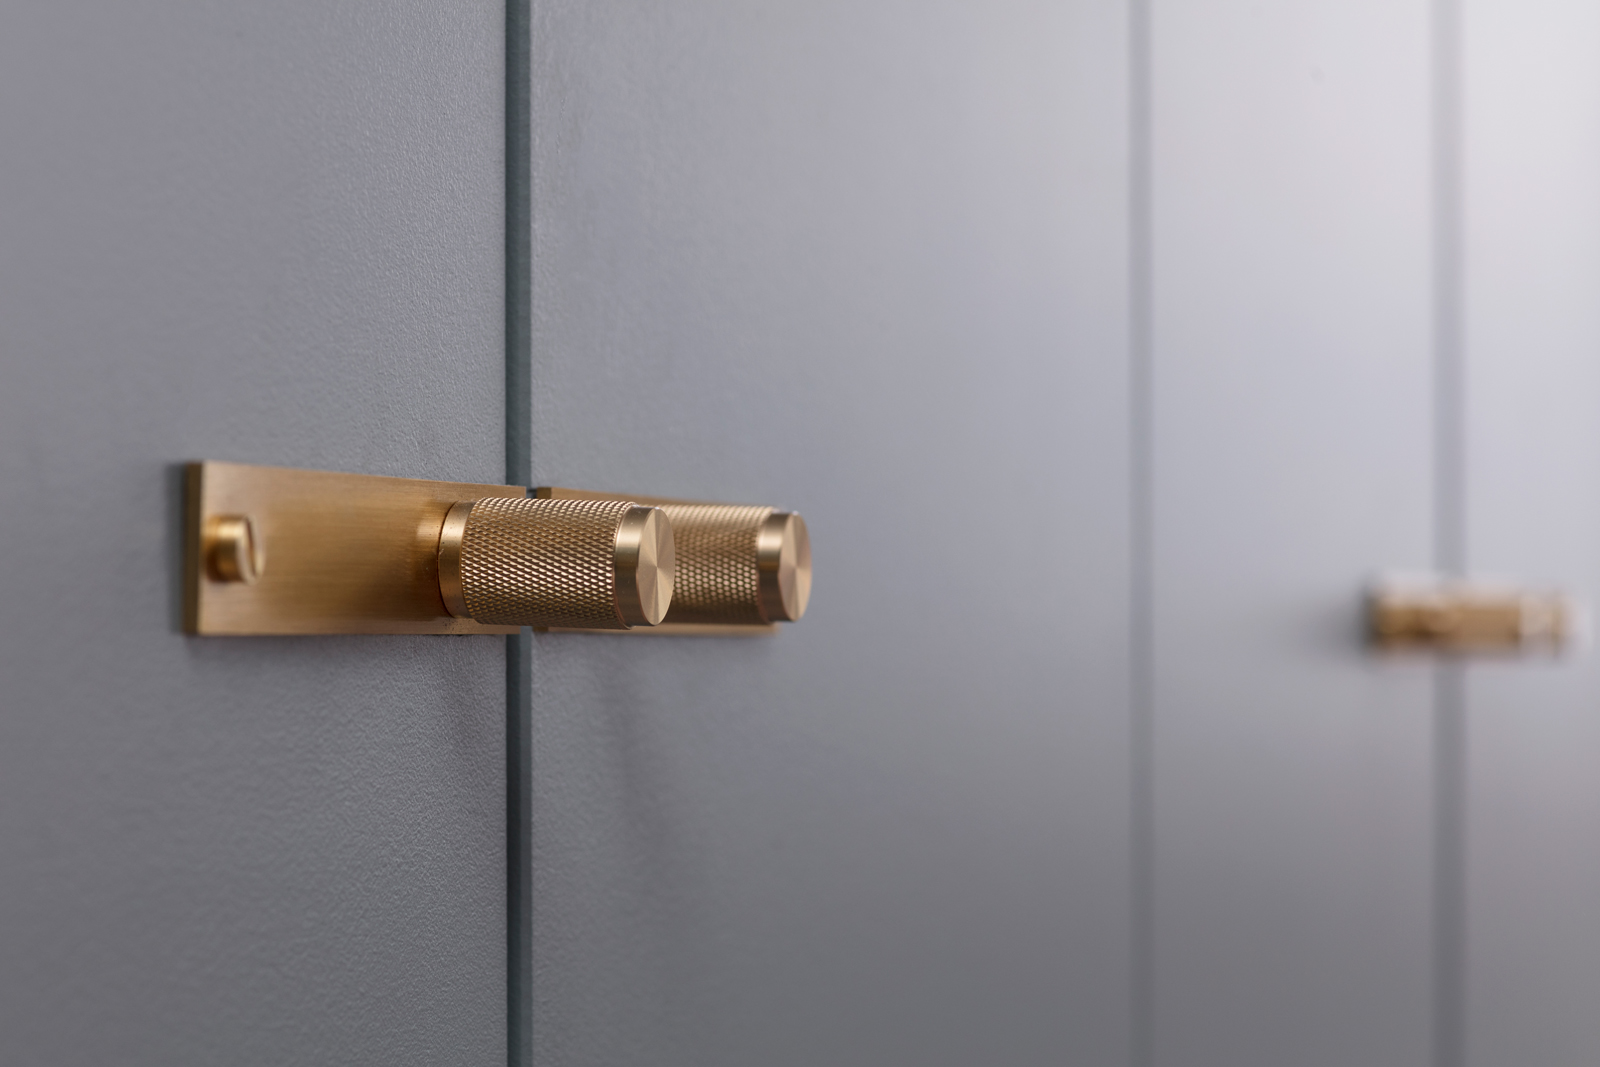 Buster + Punch brass handles on a blue fitted wardrobe